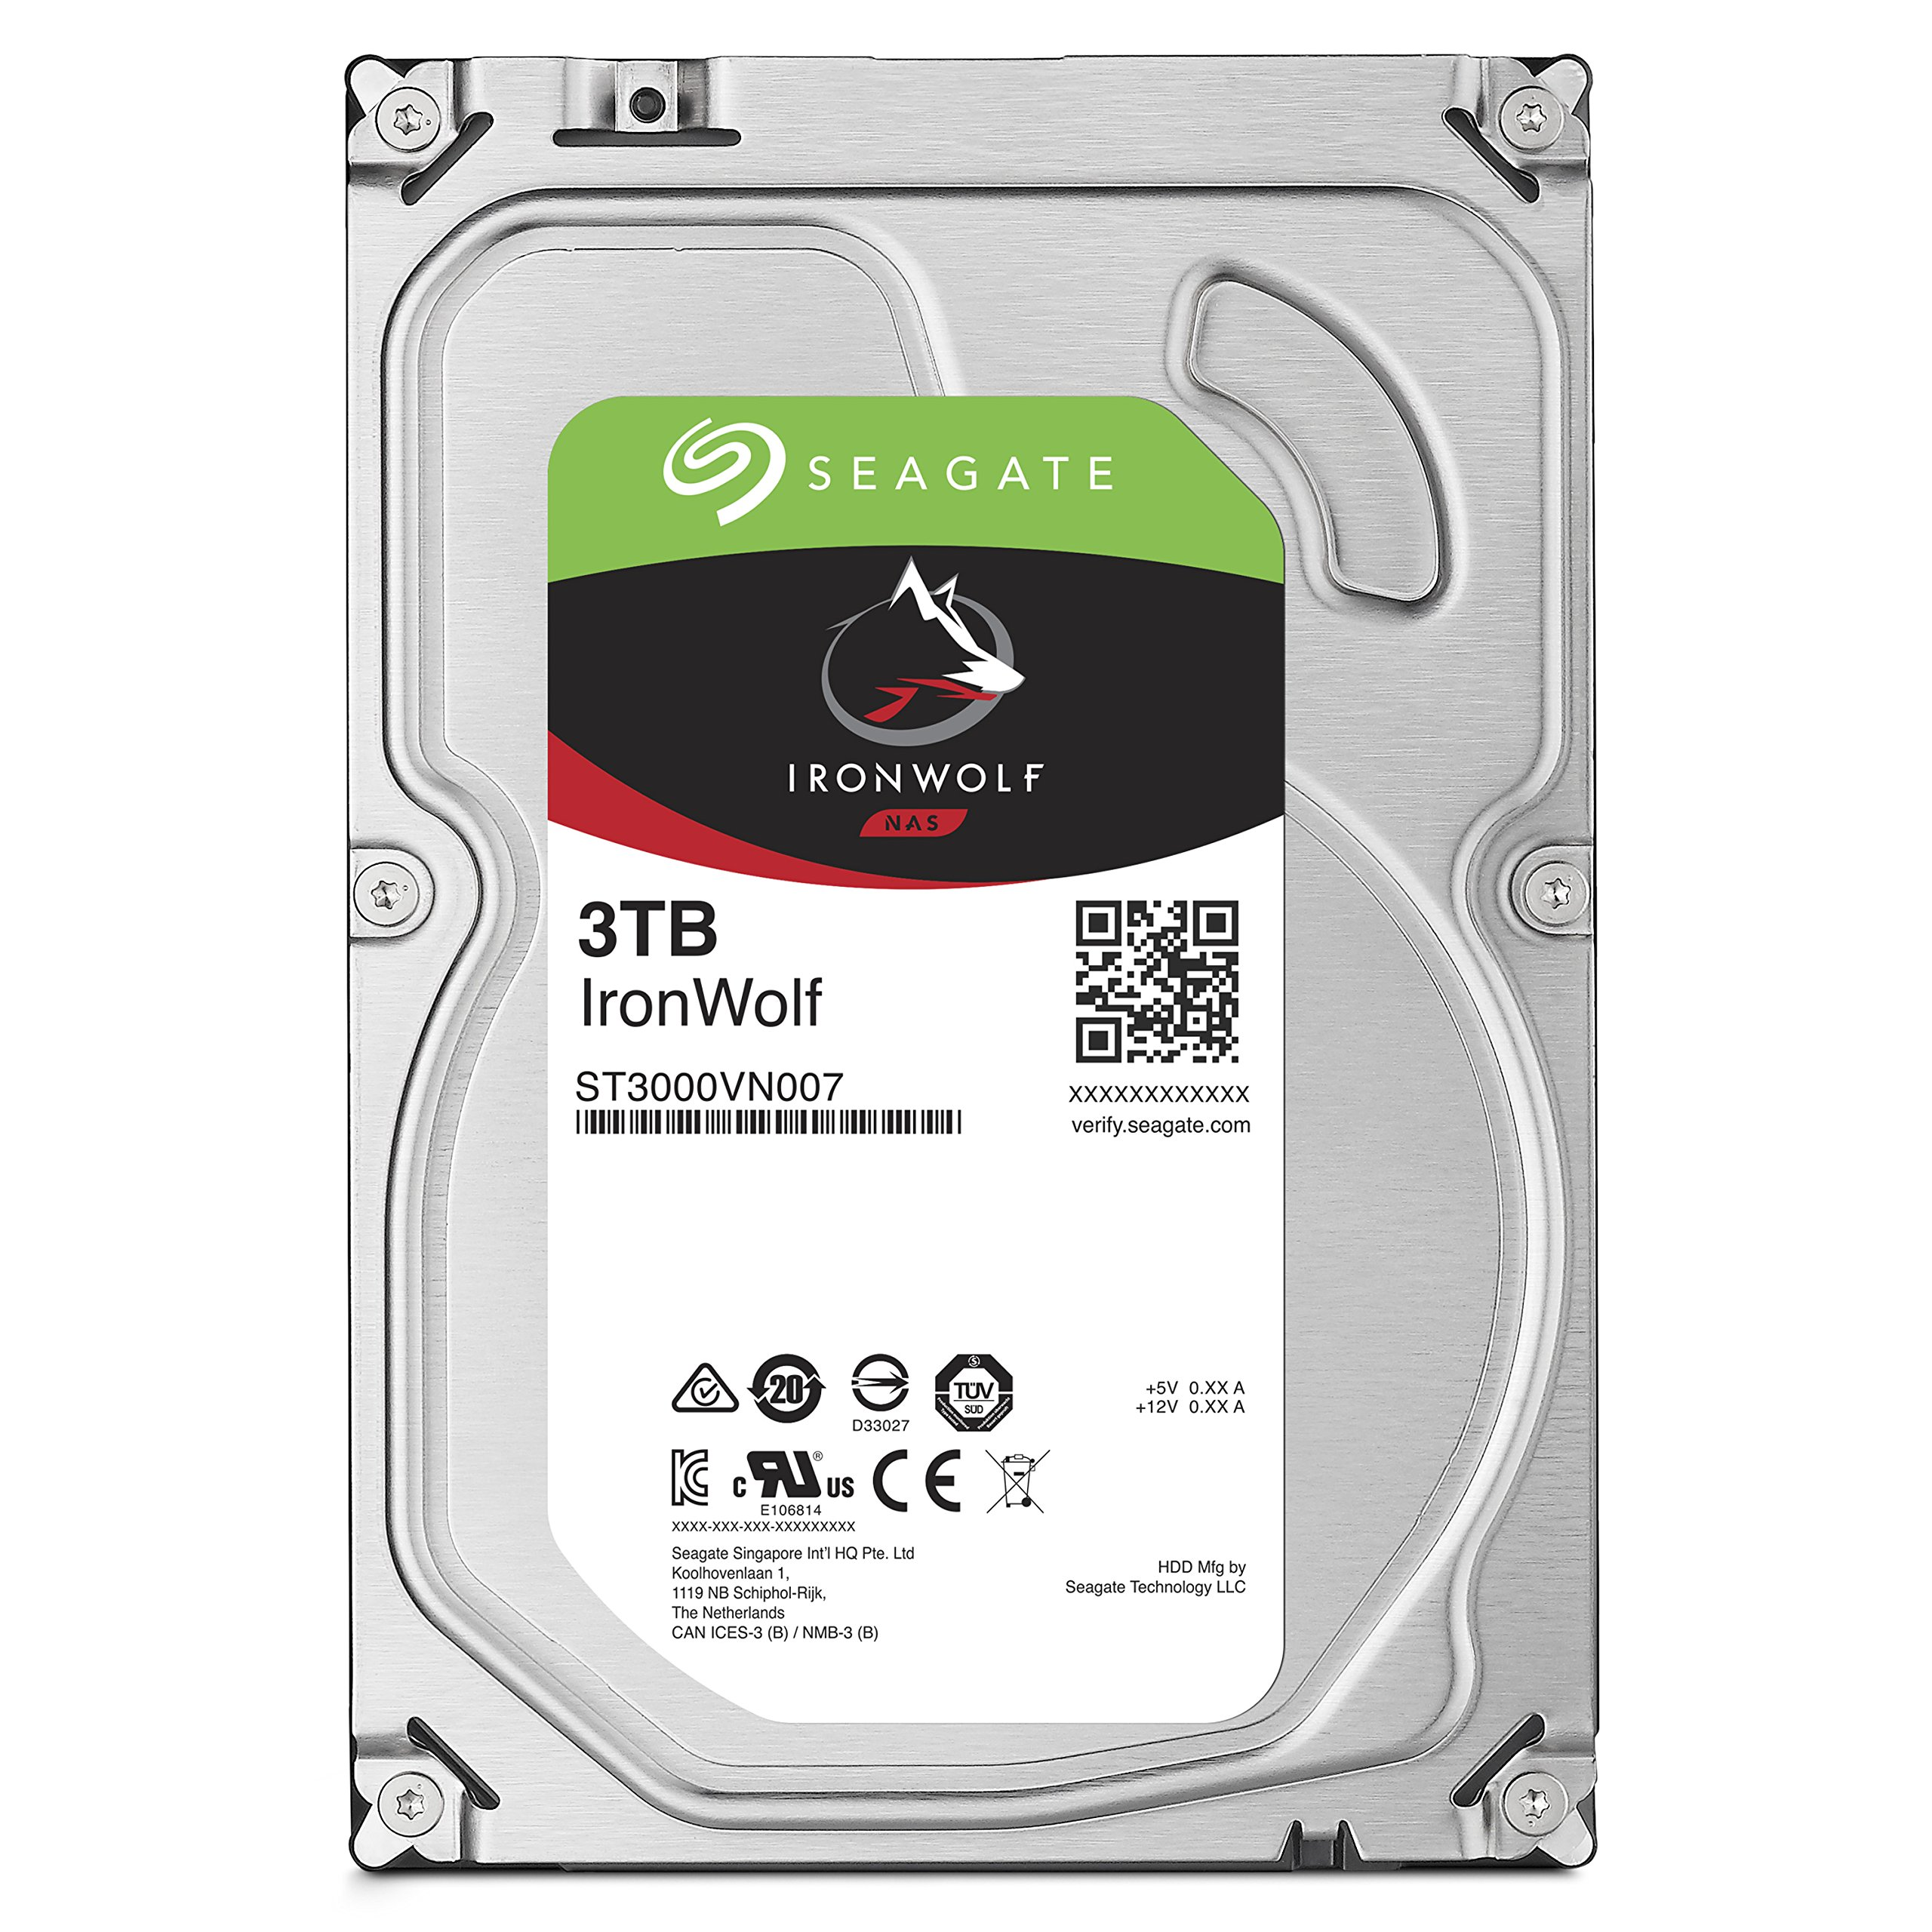 Seagate 3TB IronWolf NAS SATA Hard Drive 6Gb/s 256MB Cache 3.5-Inch Internal Hard Drive for NAS Servers, Personal Cloud Storage (ST3000VN007)